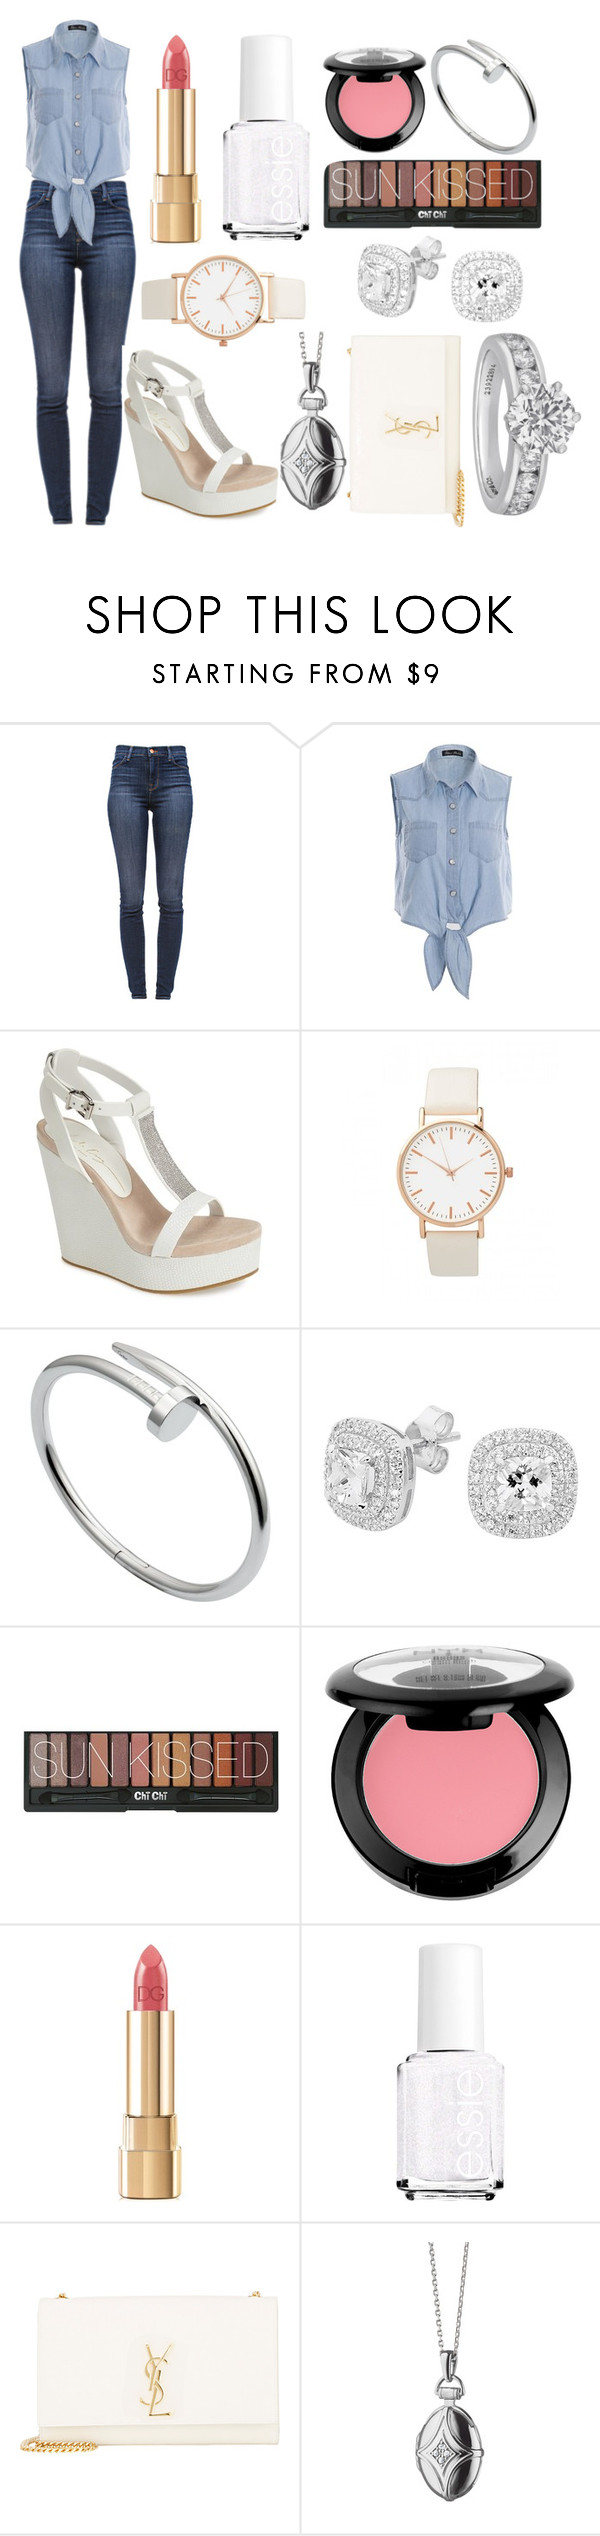 """^~^"" by blincoln ❤ liked on Polyvore featuring J Brand, Lola Cruz, Cartier, Georgini, NYX, Dolce&Gabbana, Essie, Yves Saint Laurent, Monica Rich Kosann and Tiffany & Co."